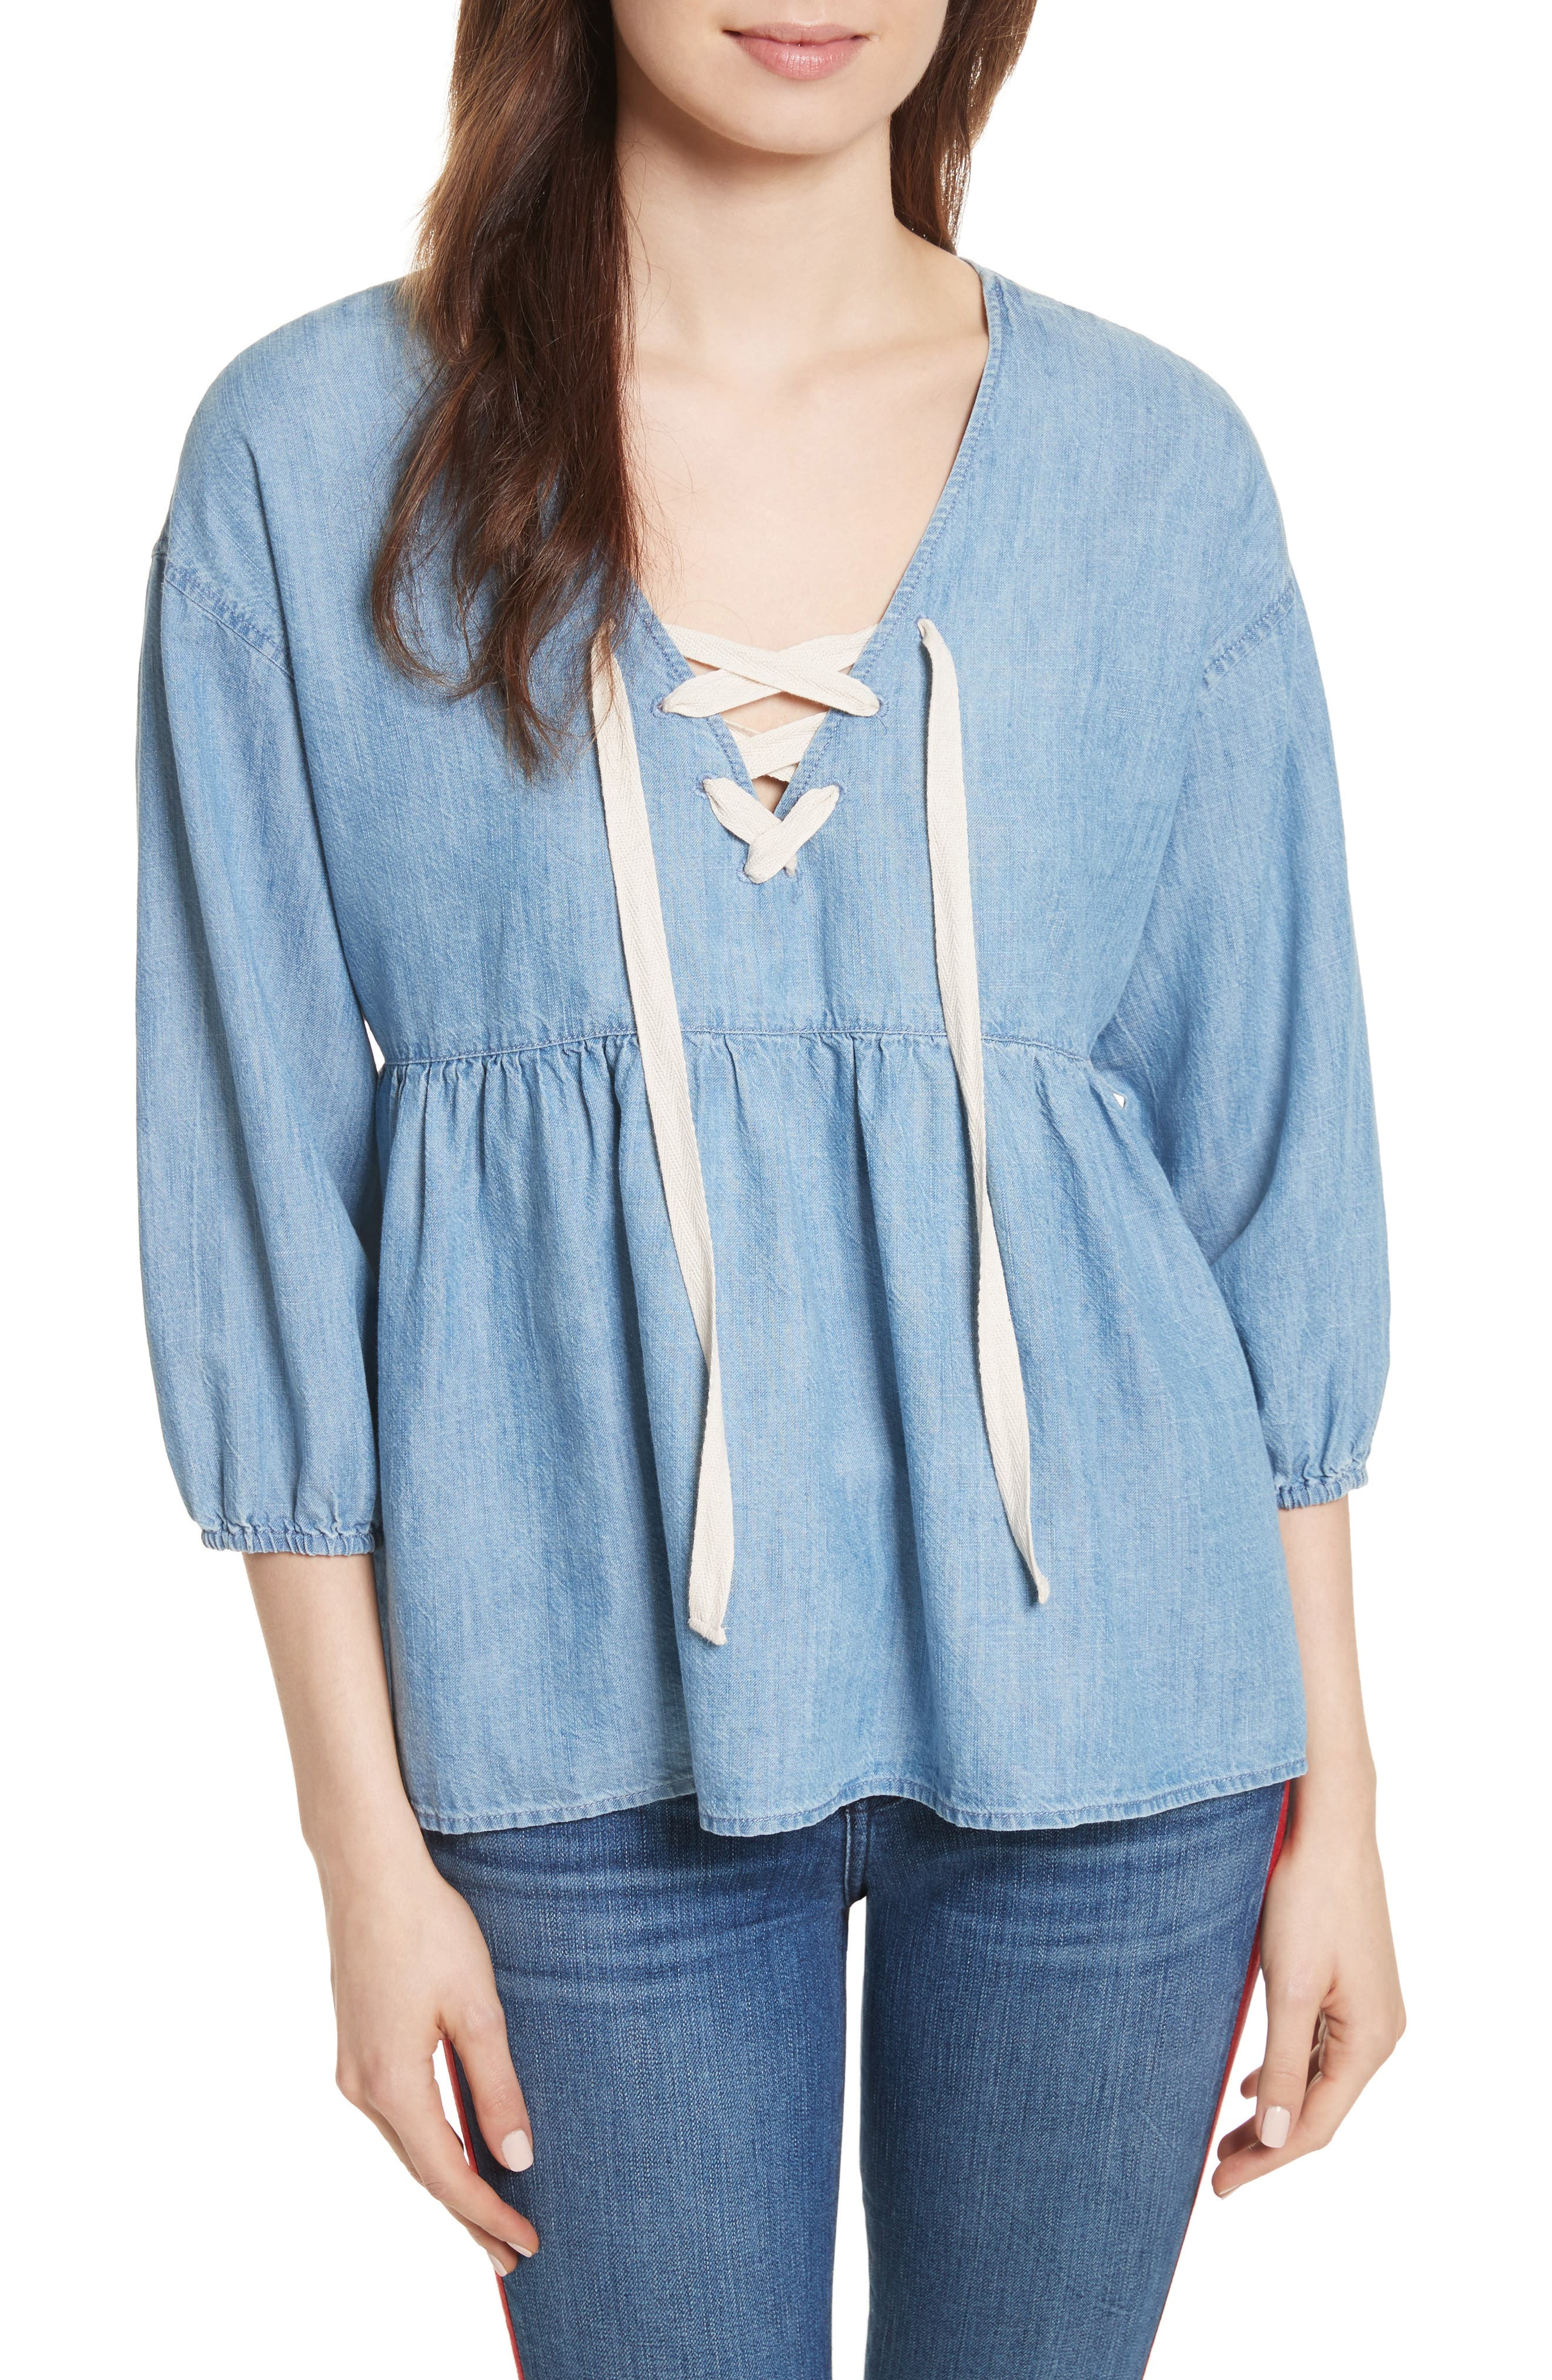 Bealette Lace-Up Chambray Top,                         Main,                         color, Vintage Chambray Wash